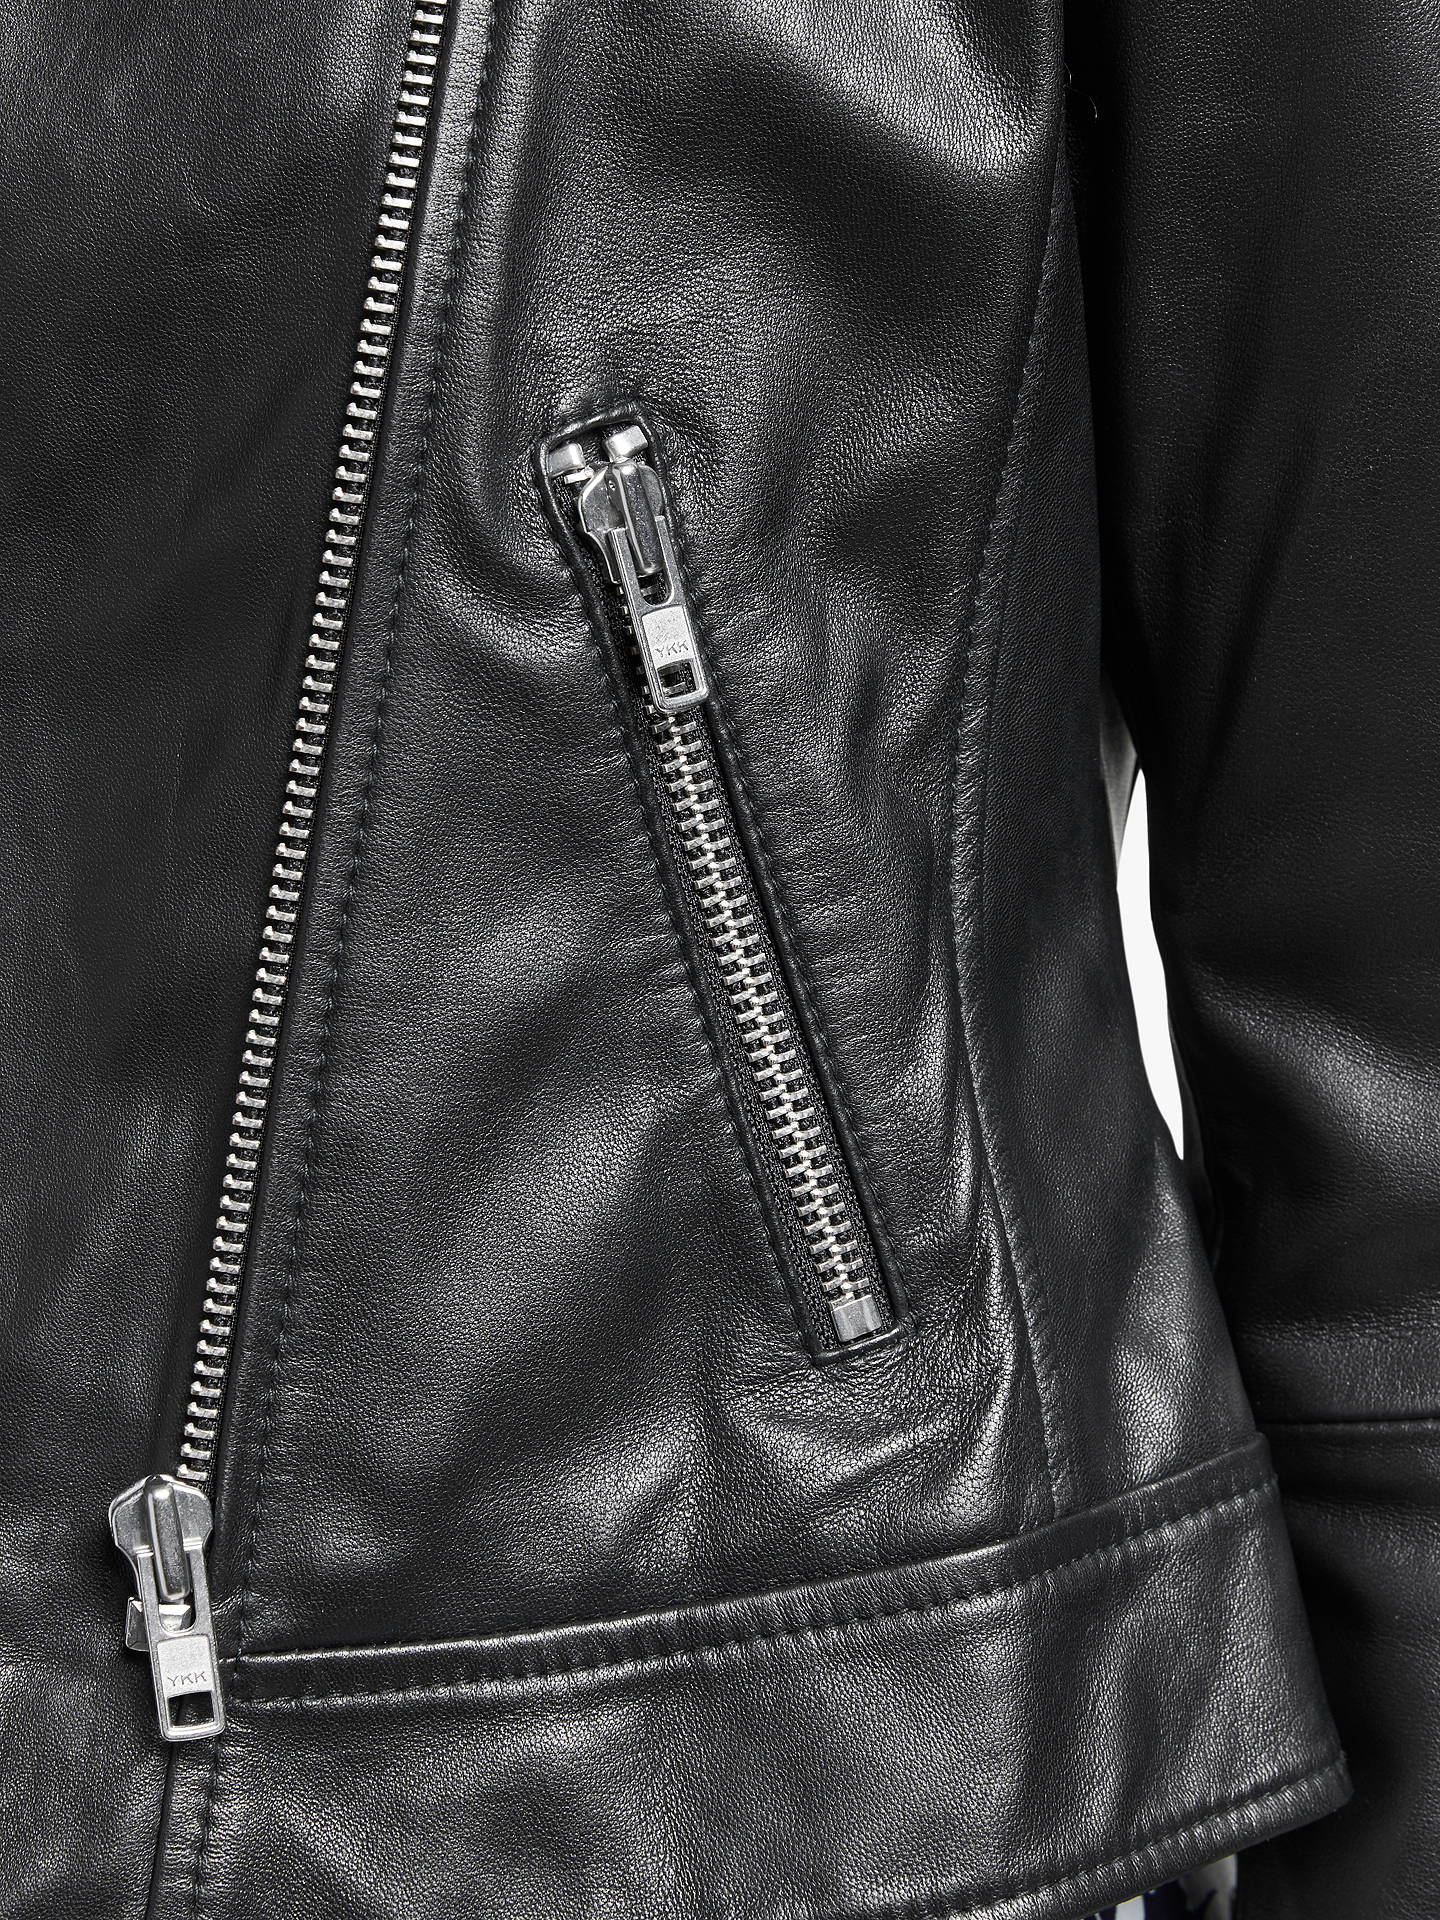 BuyBoden Morleigh Leather Jacket, Black, 8 Online at johnlewis.com